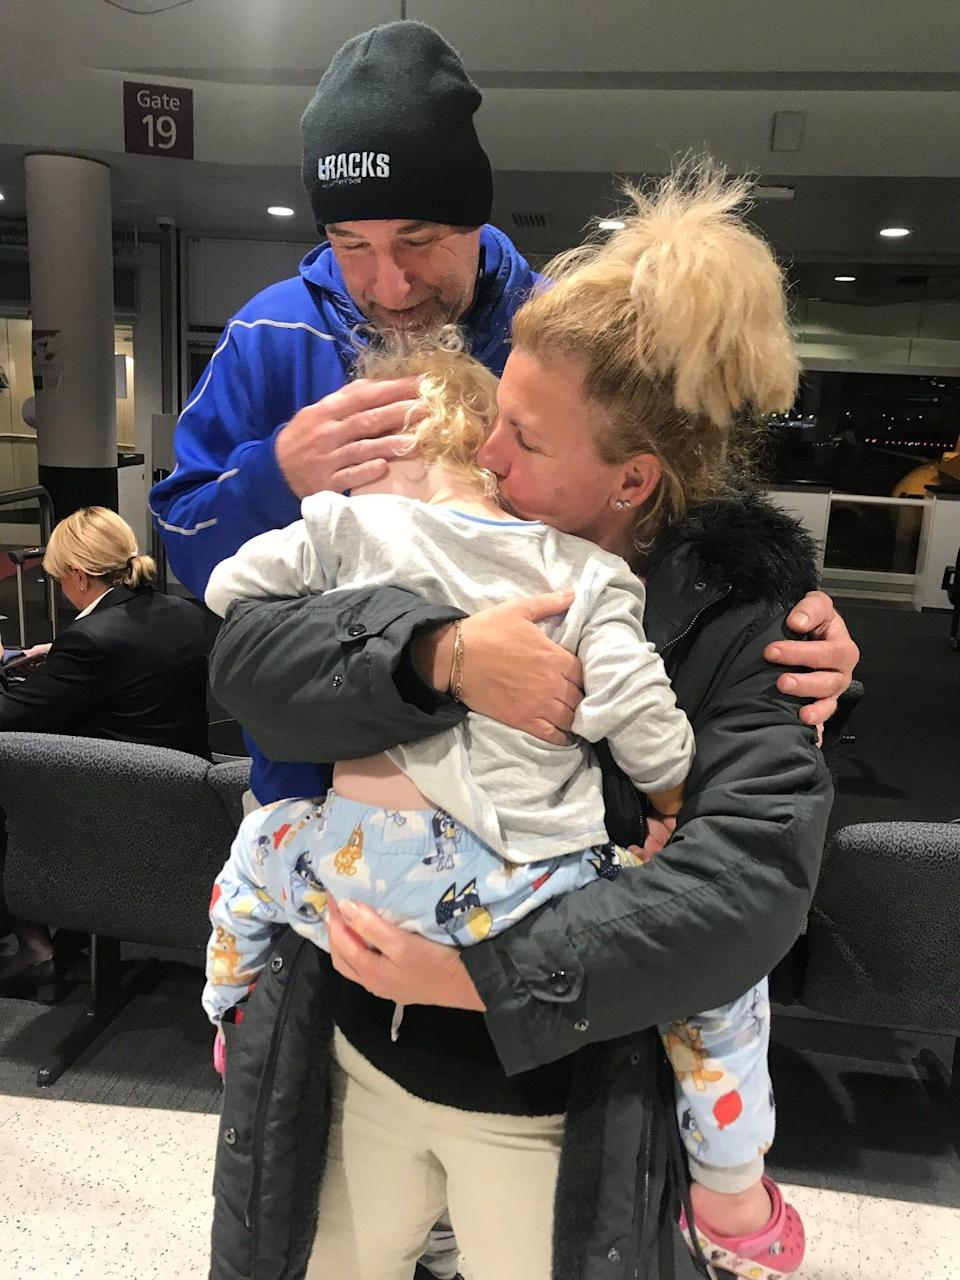 Then-3-year-old Poppy Wells gets a hug from her grandparents, Ian and Peggy McElligott, at the airport in July 2020.